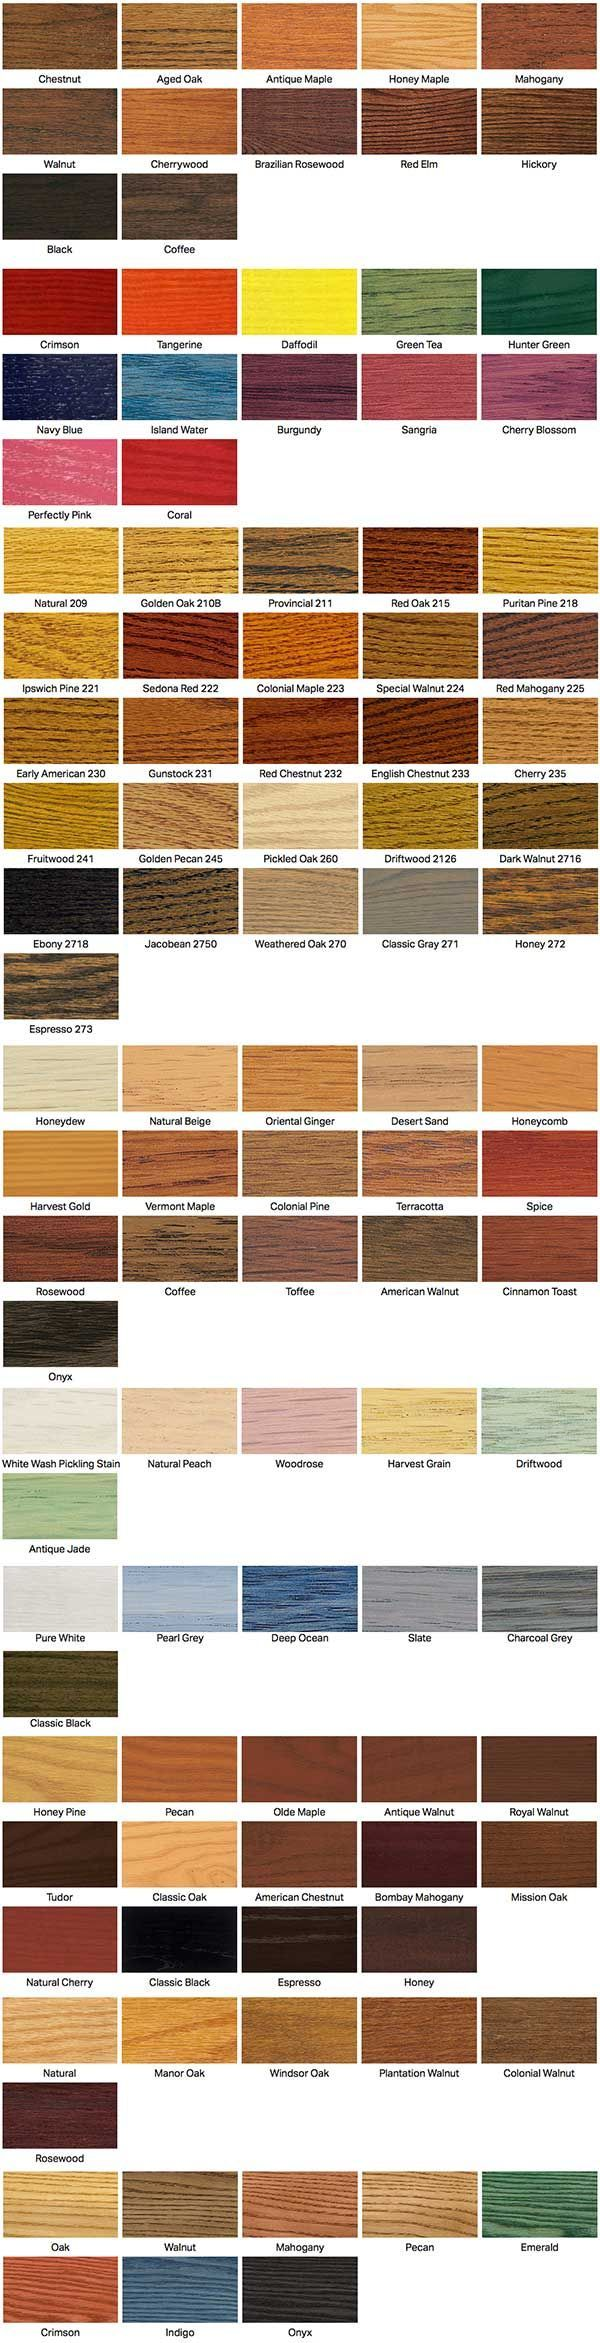 wood floor stain colors from Minwax by Indianapolis hardwood floor service